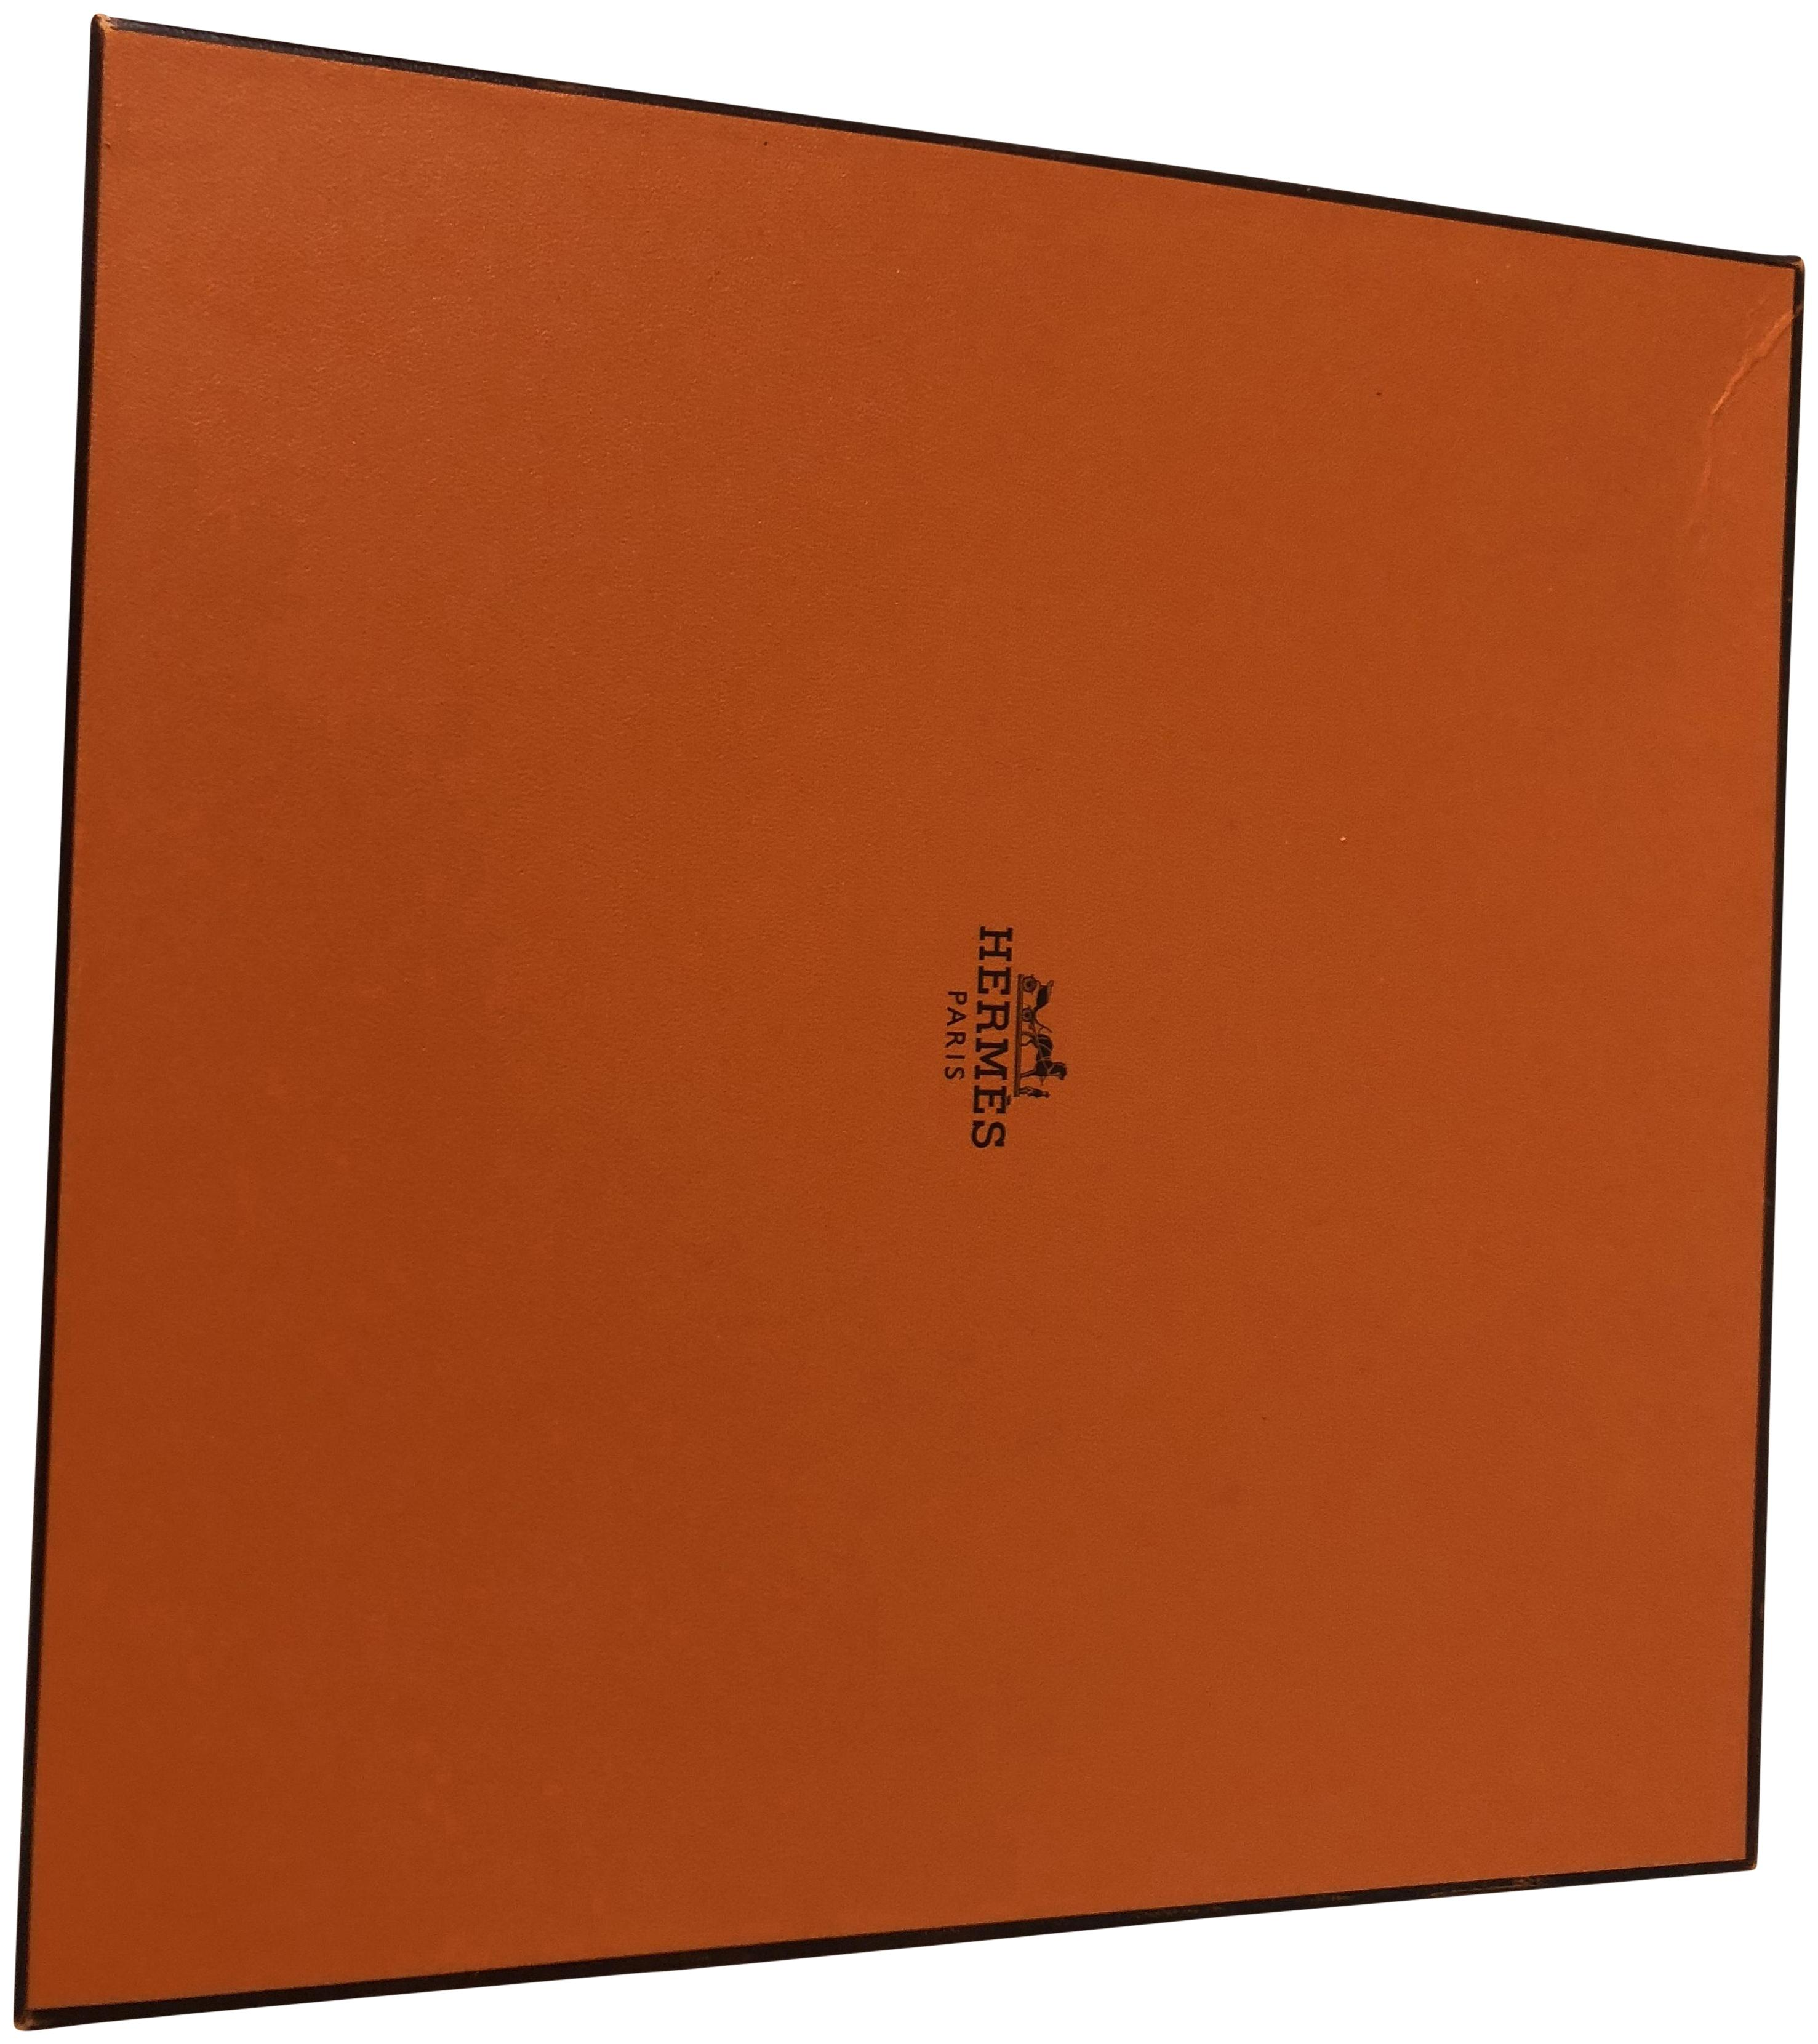 ca4abb639dab ... clearance hermès scarves on sale up to 70 off at tradesy 9ac93 4d76c